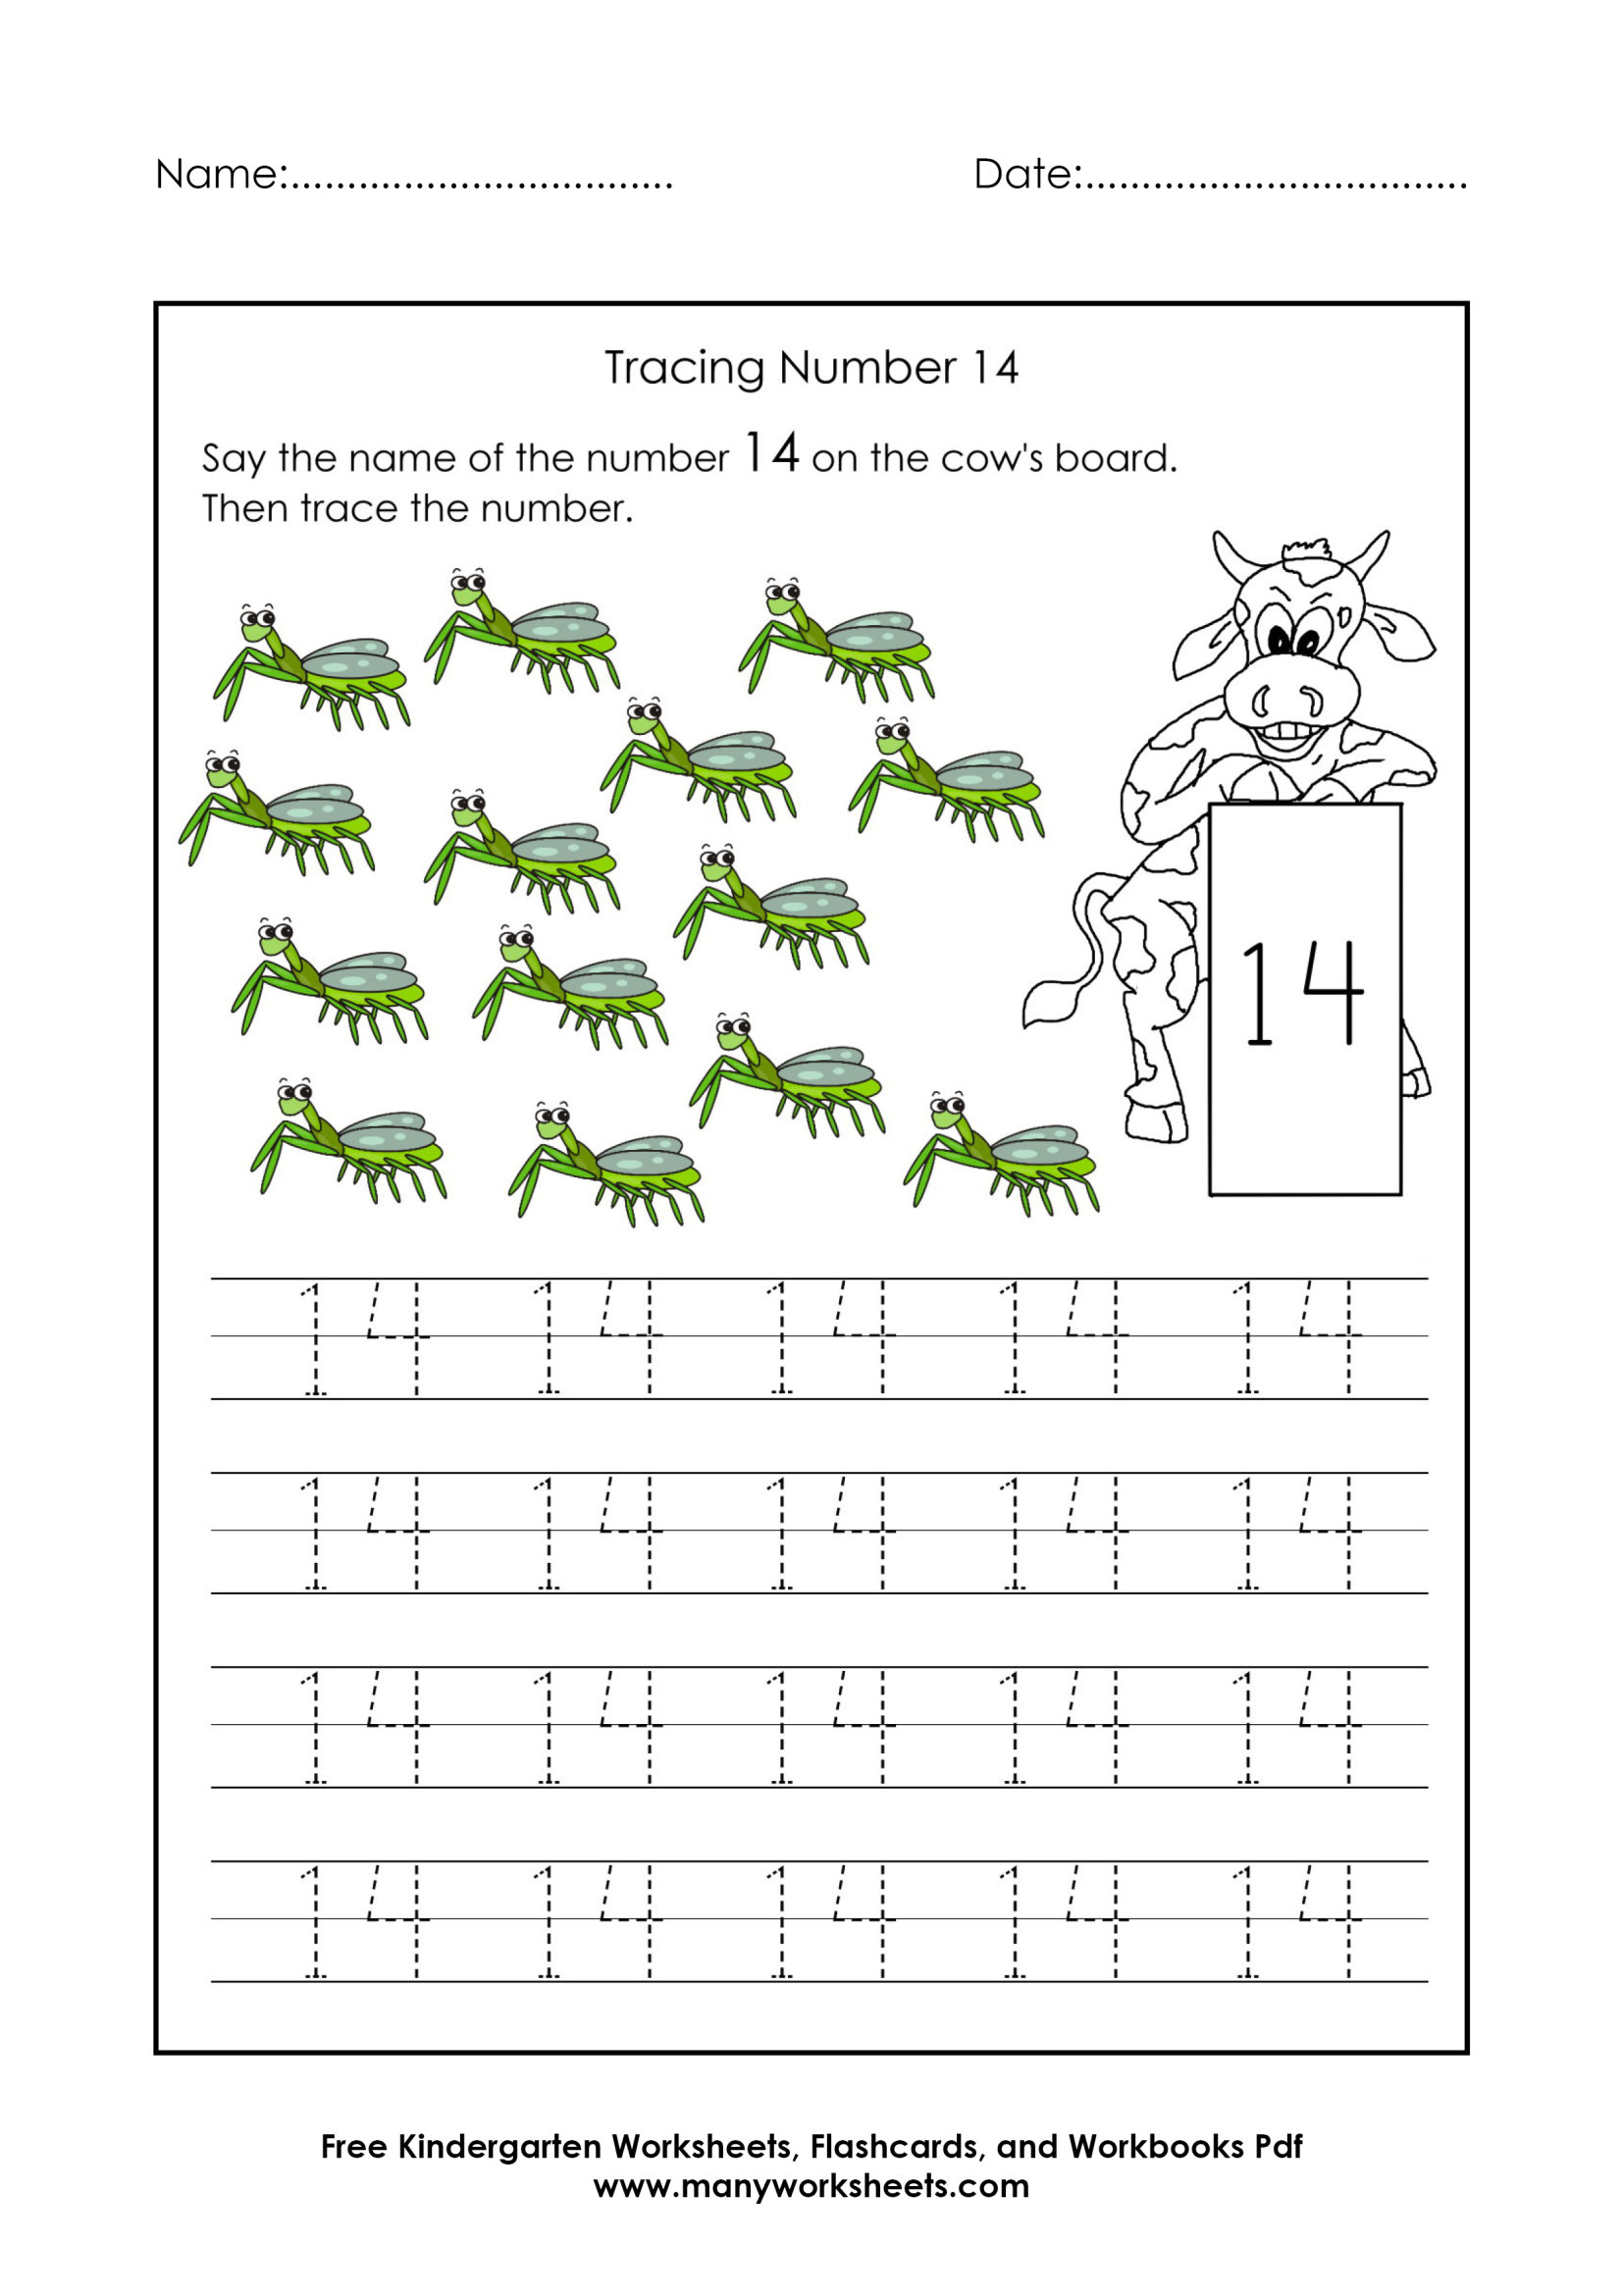 Tracing Number 14 Worksheets